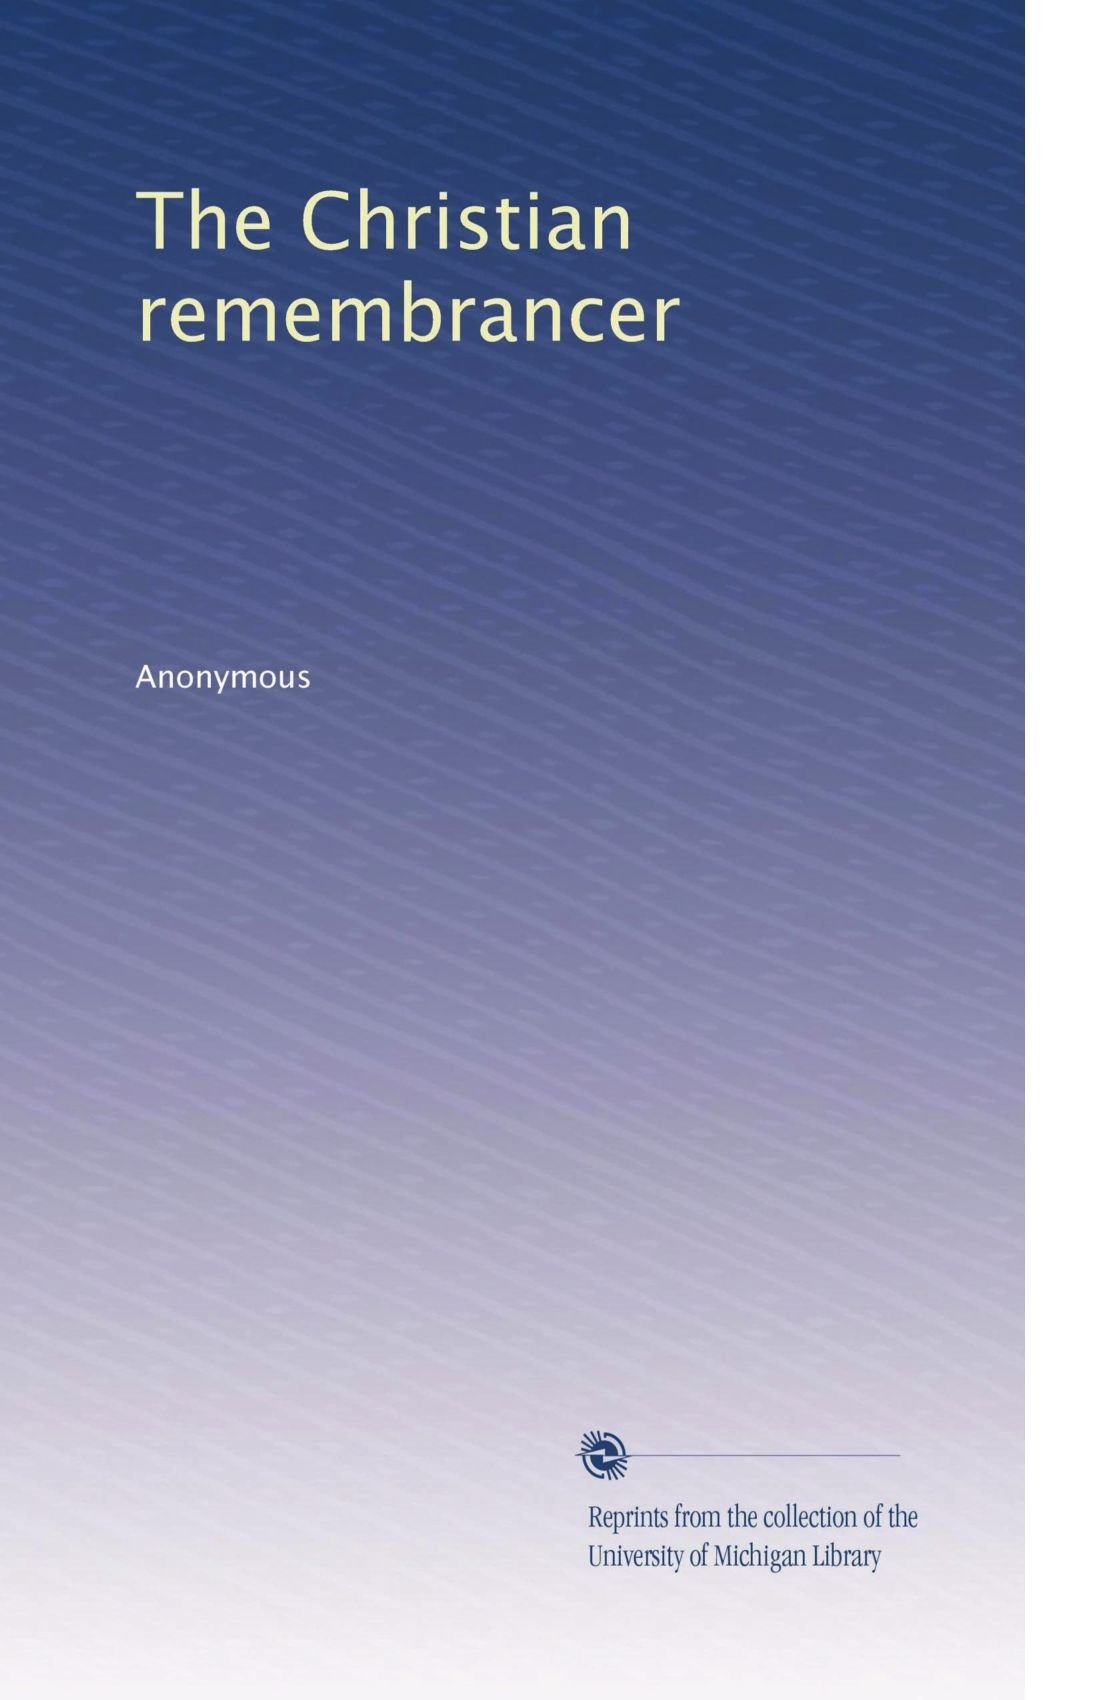 The Christian remembrancer ebook